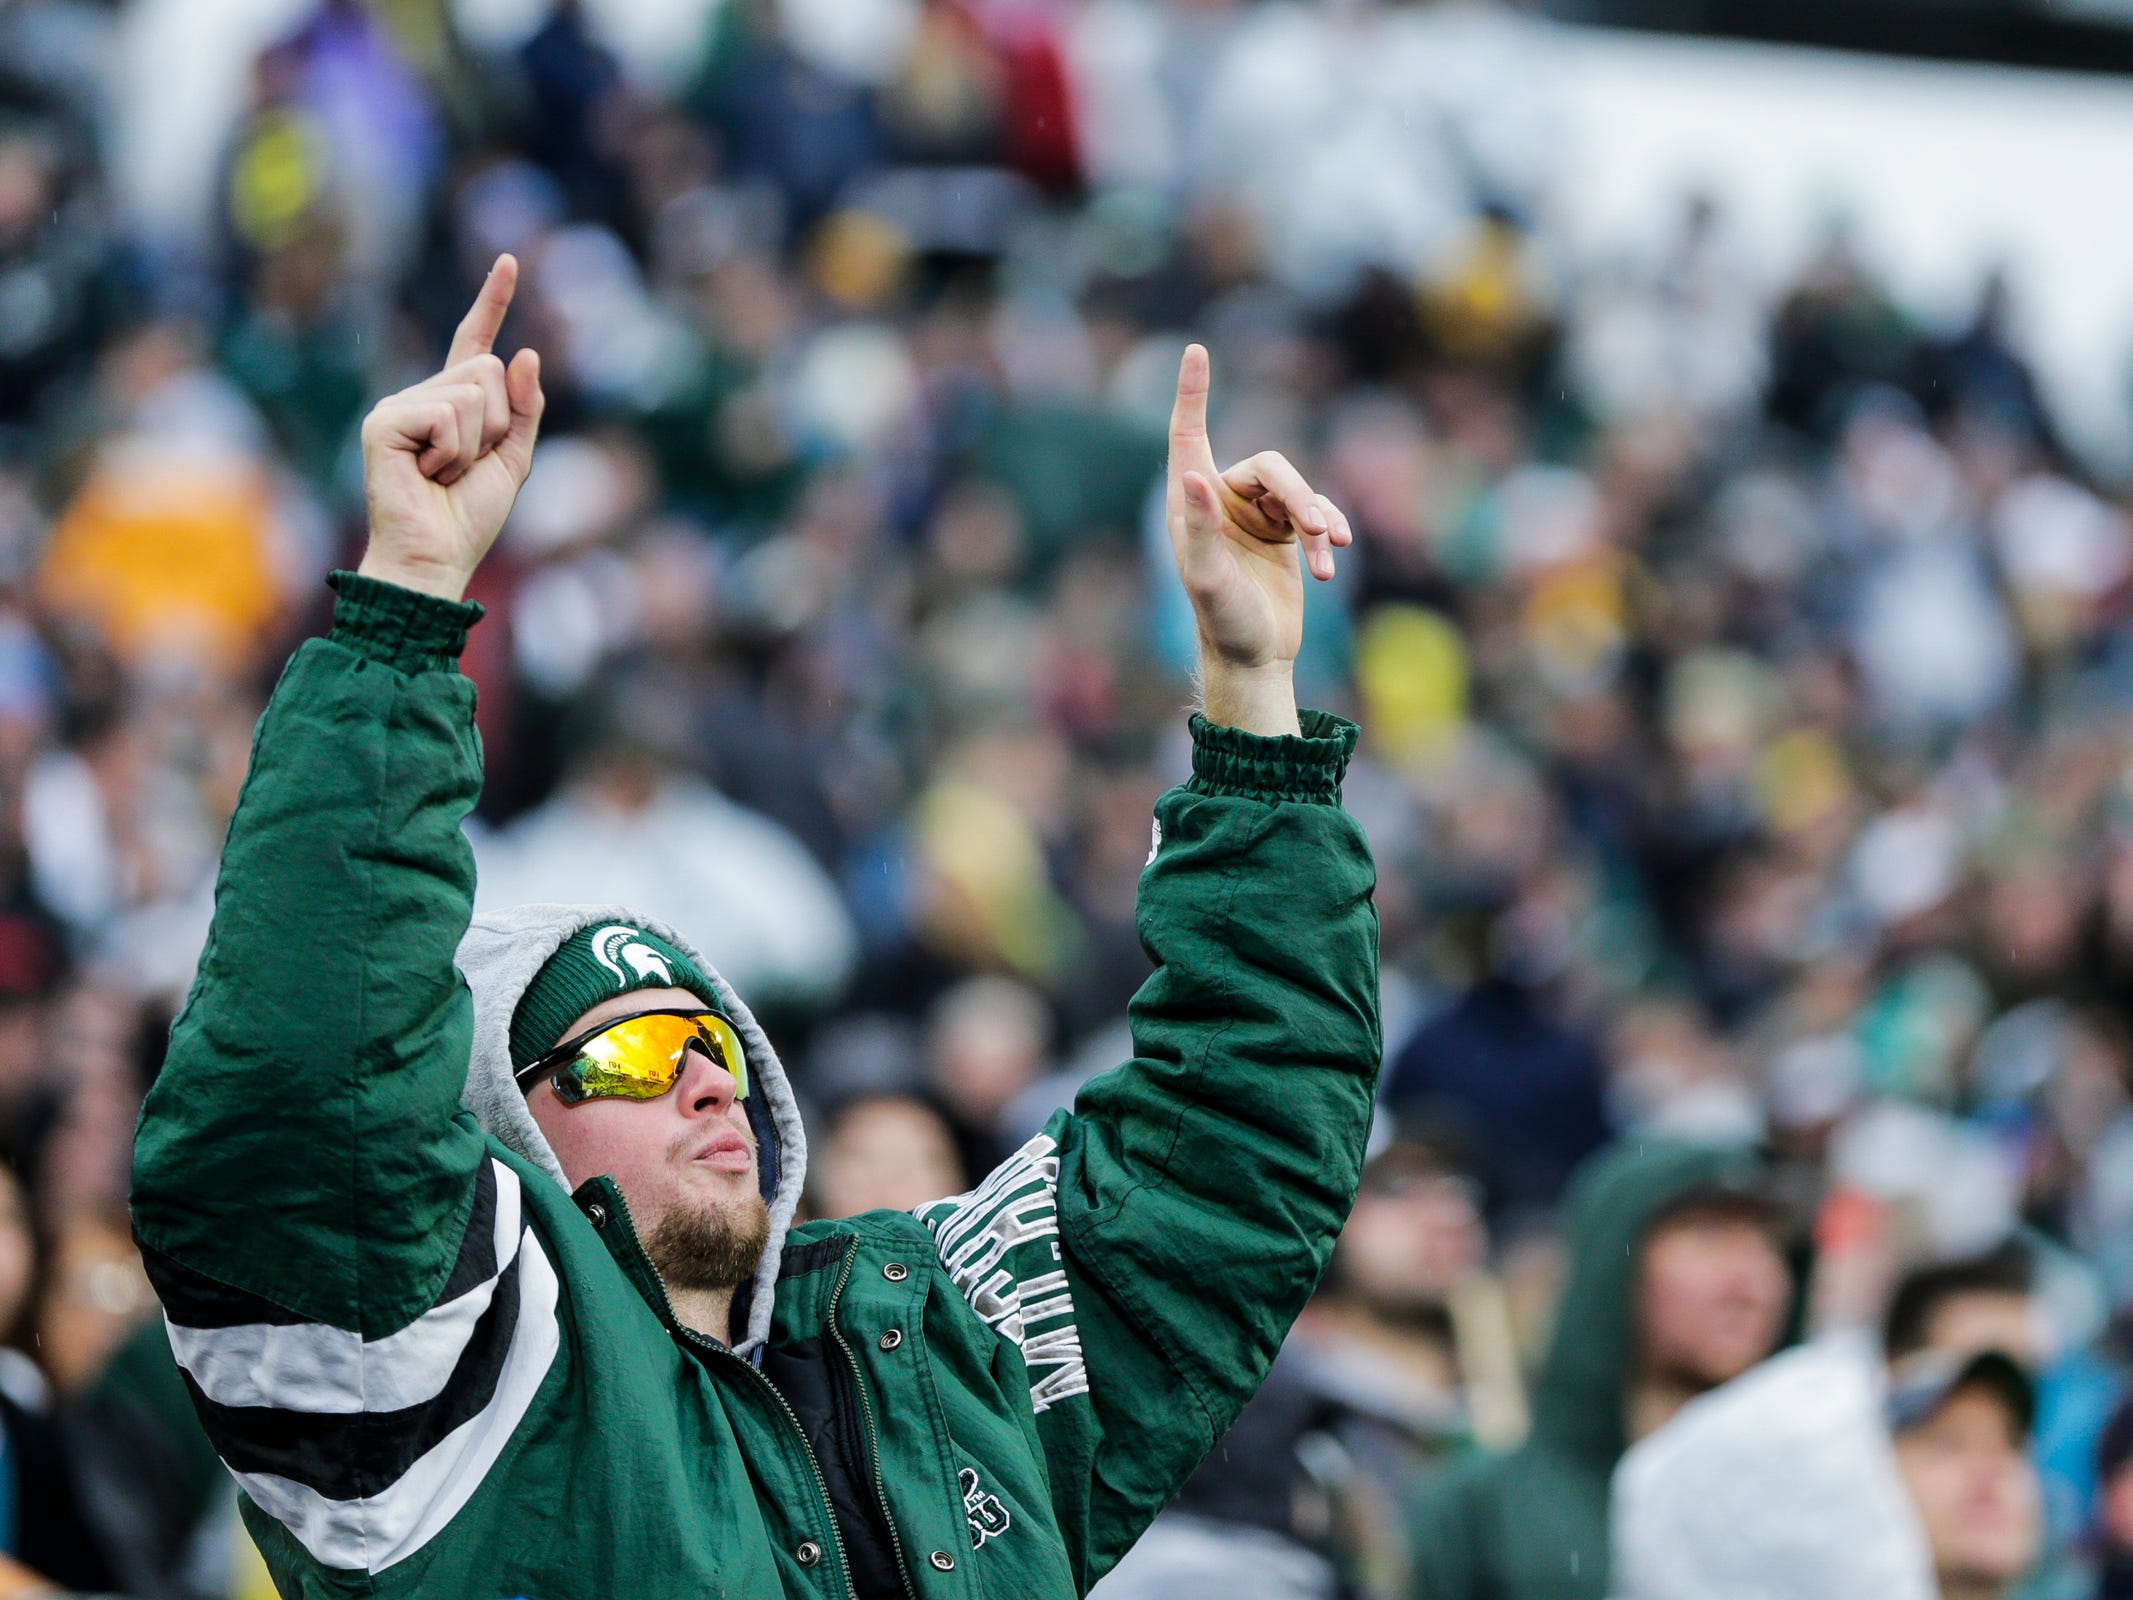 A Michigan State fan cheers for the Spartans during the second half against Michigan at Spartan Stadium in East Lansing, Saturday, Oct. 20, 2018.